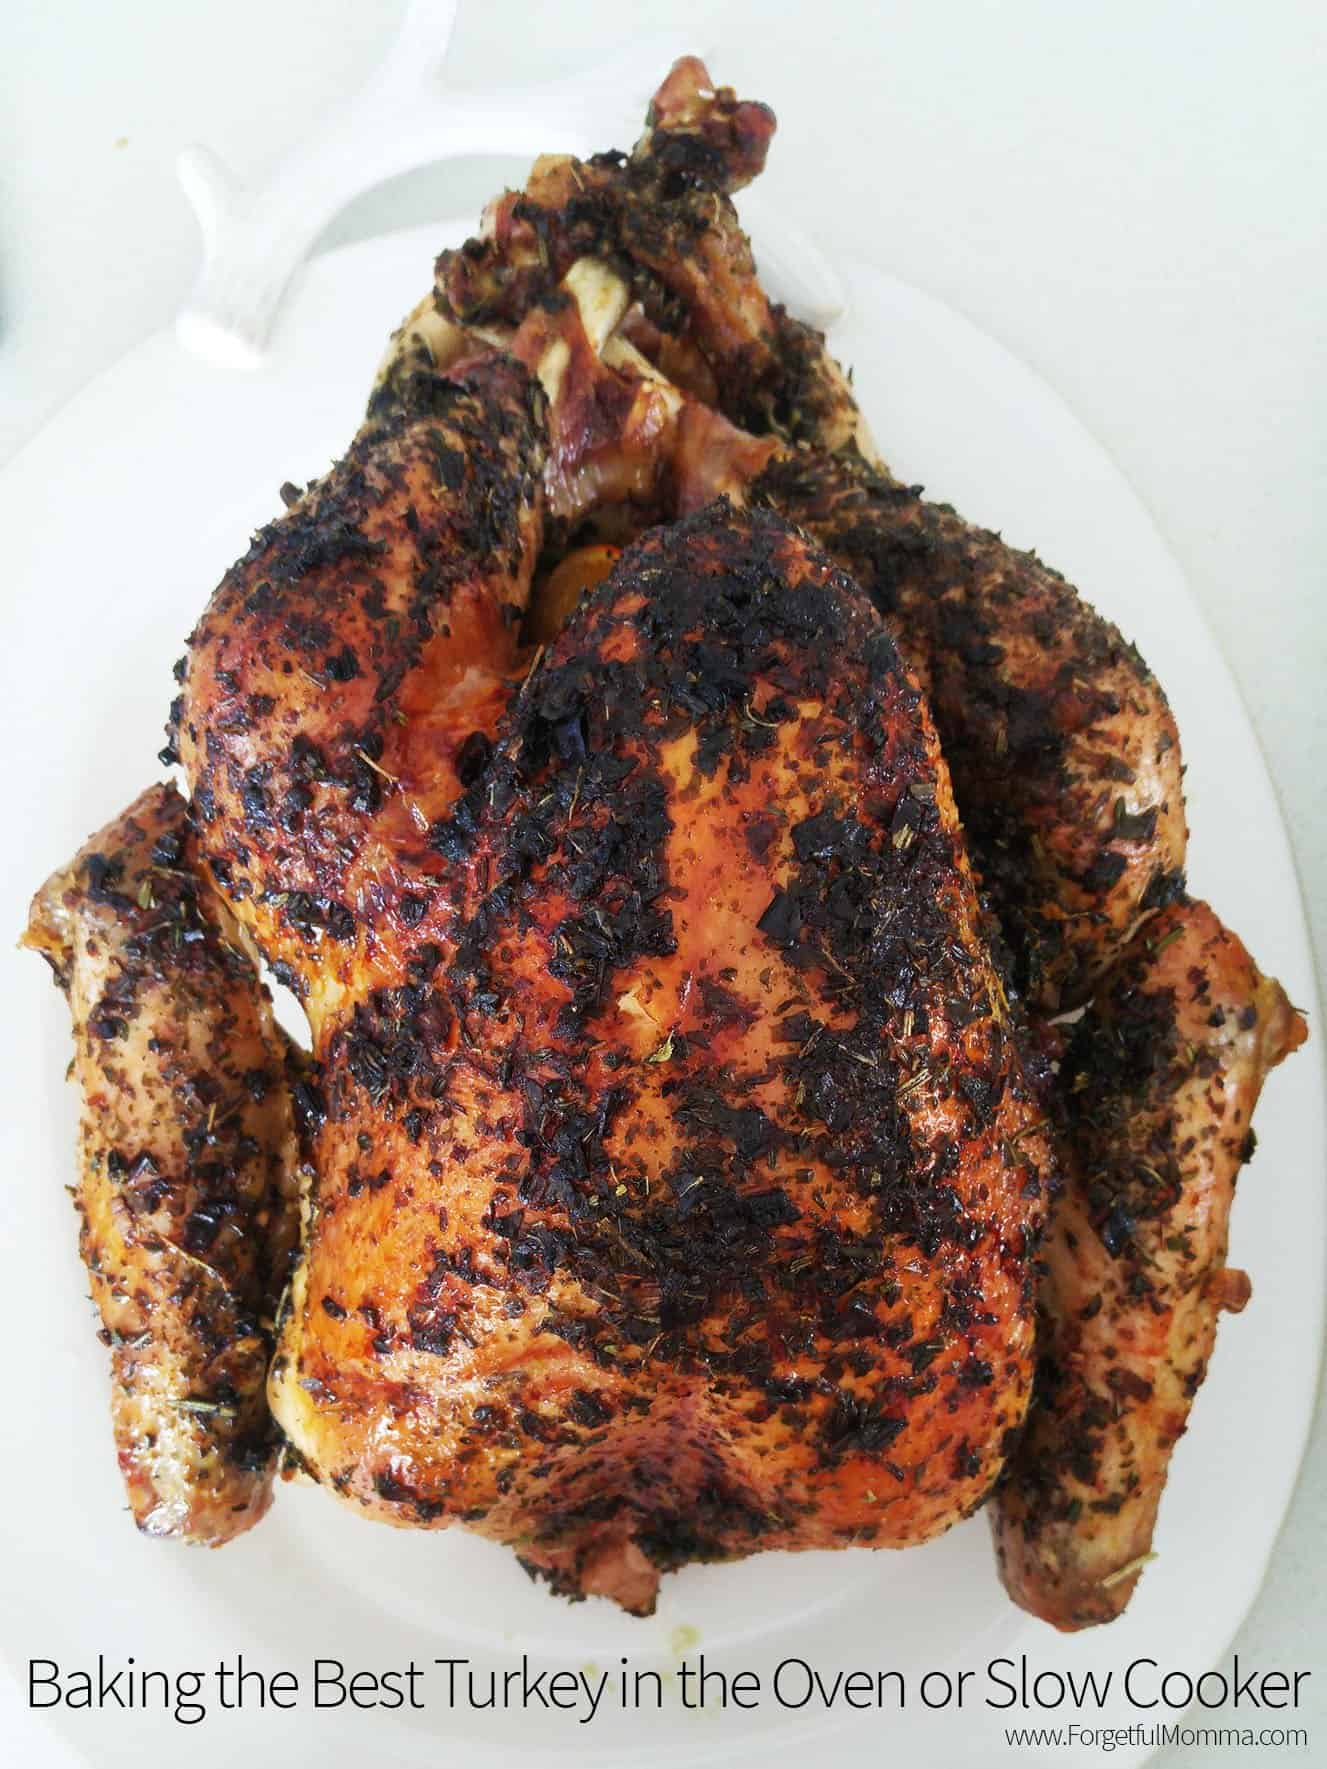 Baking the Best Turkey in the Oven or Slow Cooker